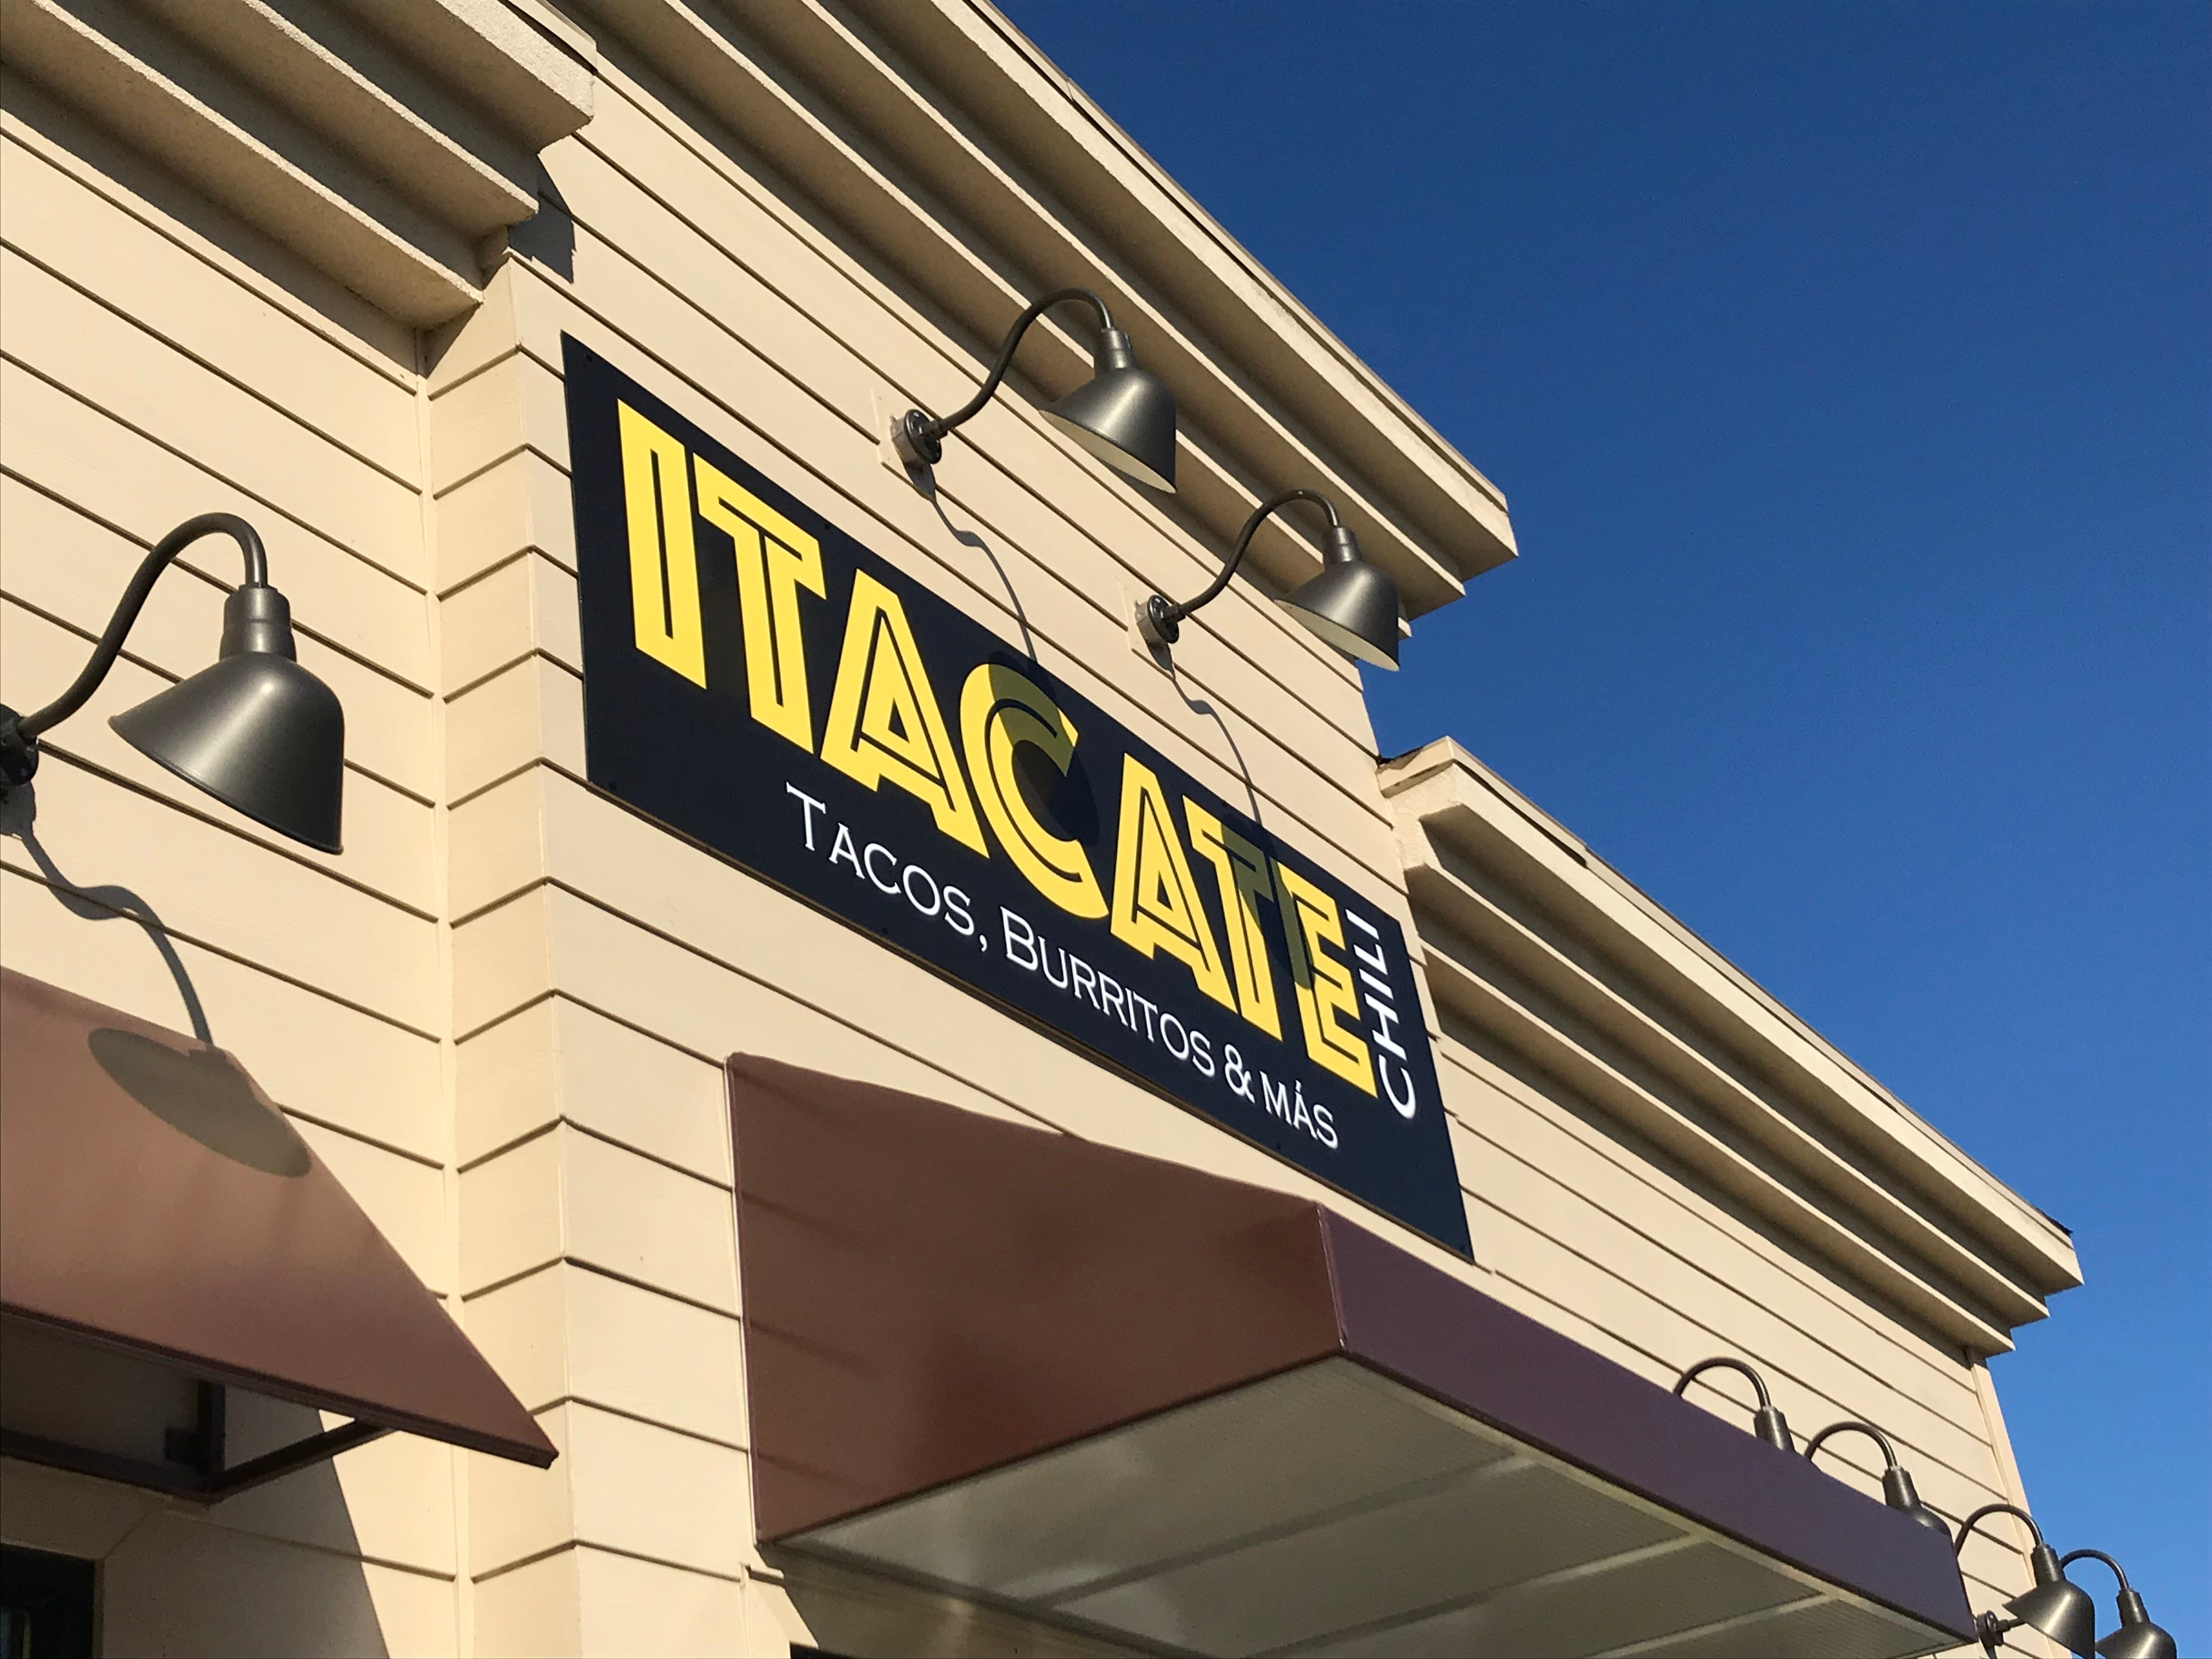 Itacate is introducing new graphics with its Chili location.